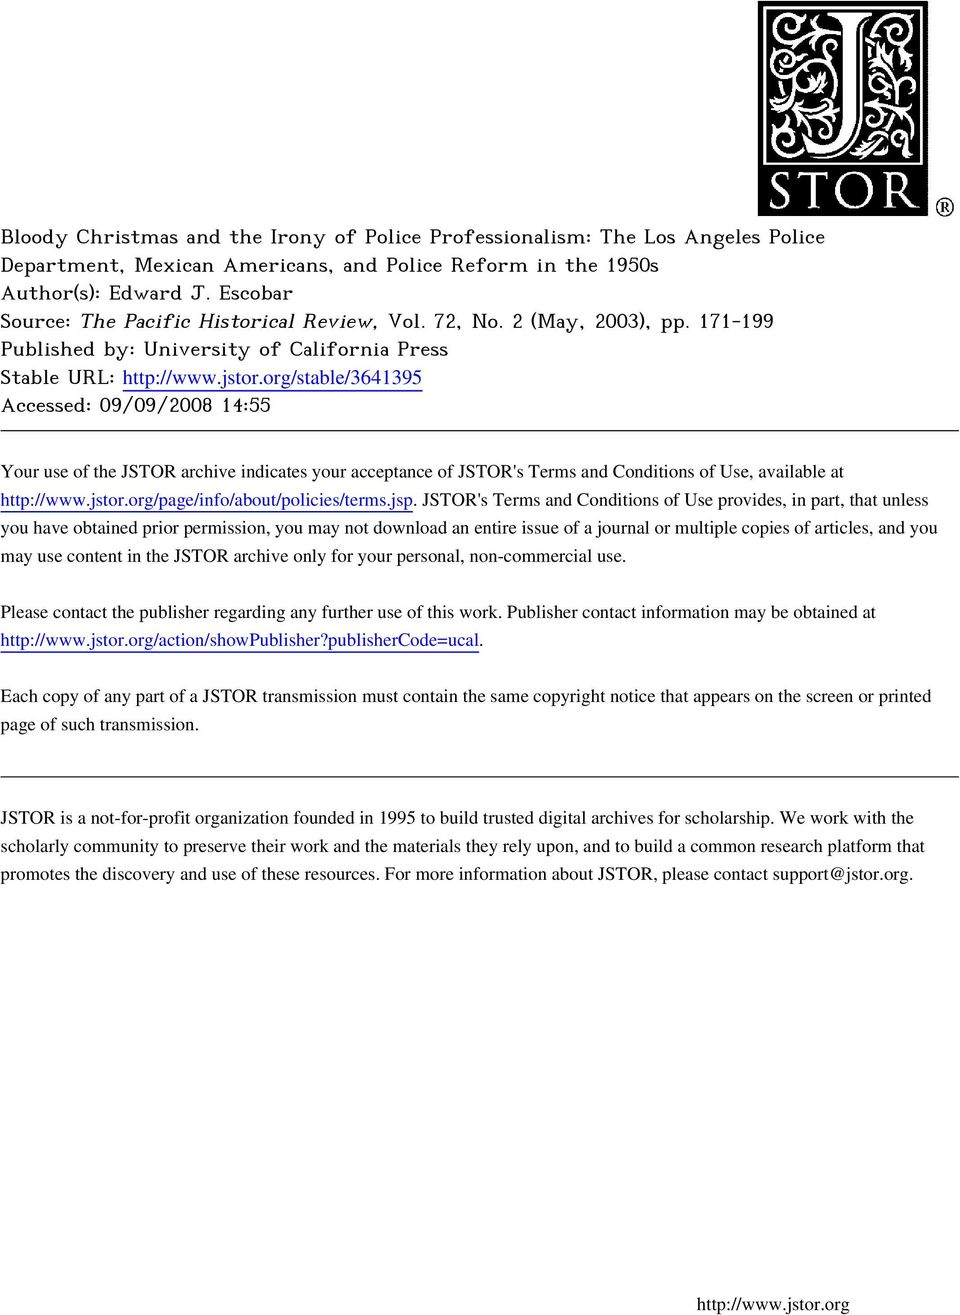 org/stable/3641395 Accessed: 09/09/2008 14:55 Your use of the JSTOR archive indicates your acceptance of JSTOR's Terms and Conditions of Use, available at http://www.jstor.